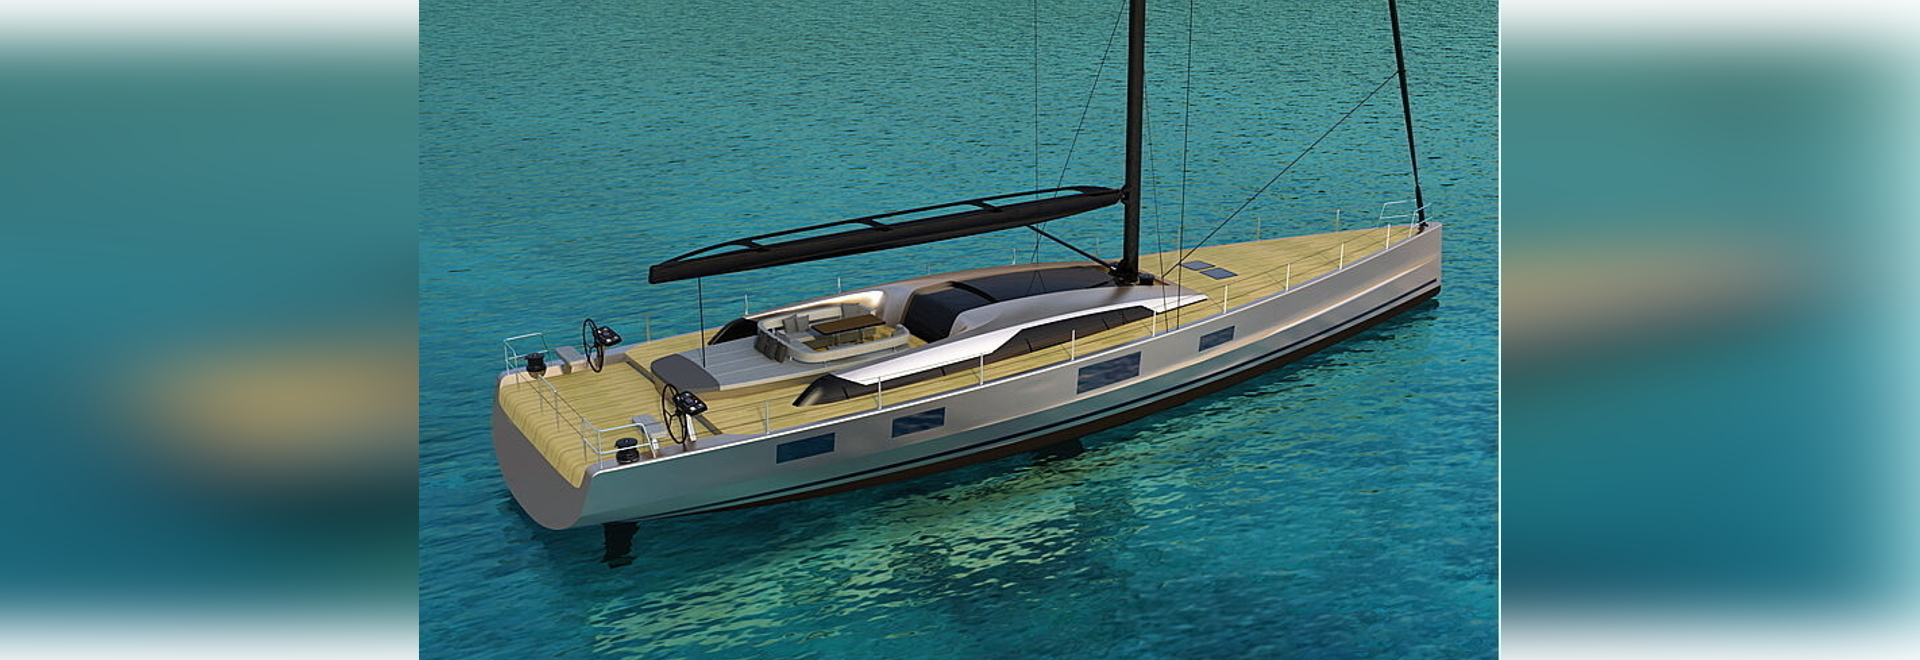 Closer look: The new Makara sailing yacht series by McKeon and McConaghy